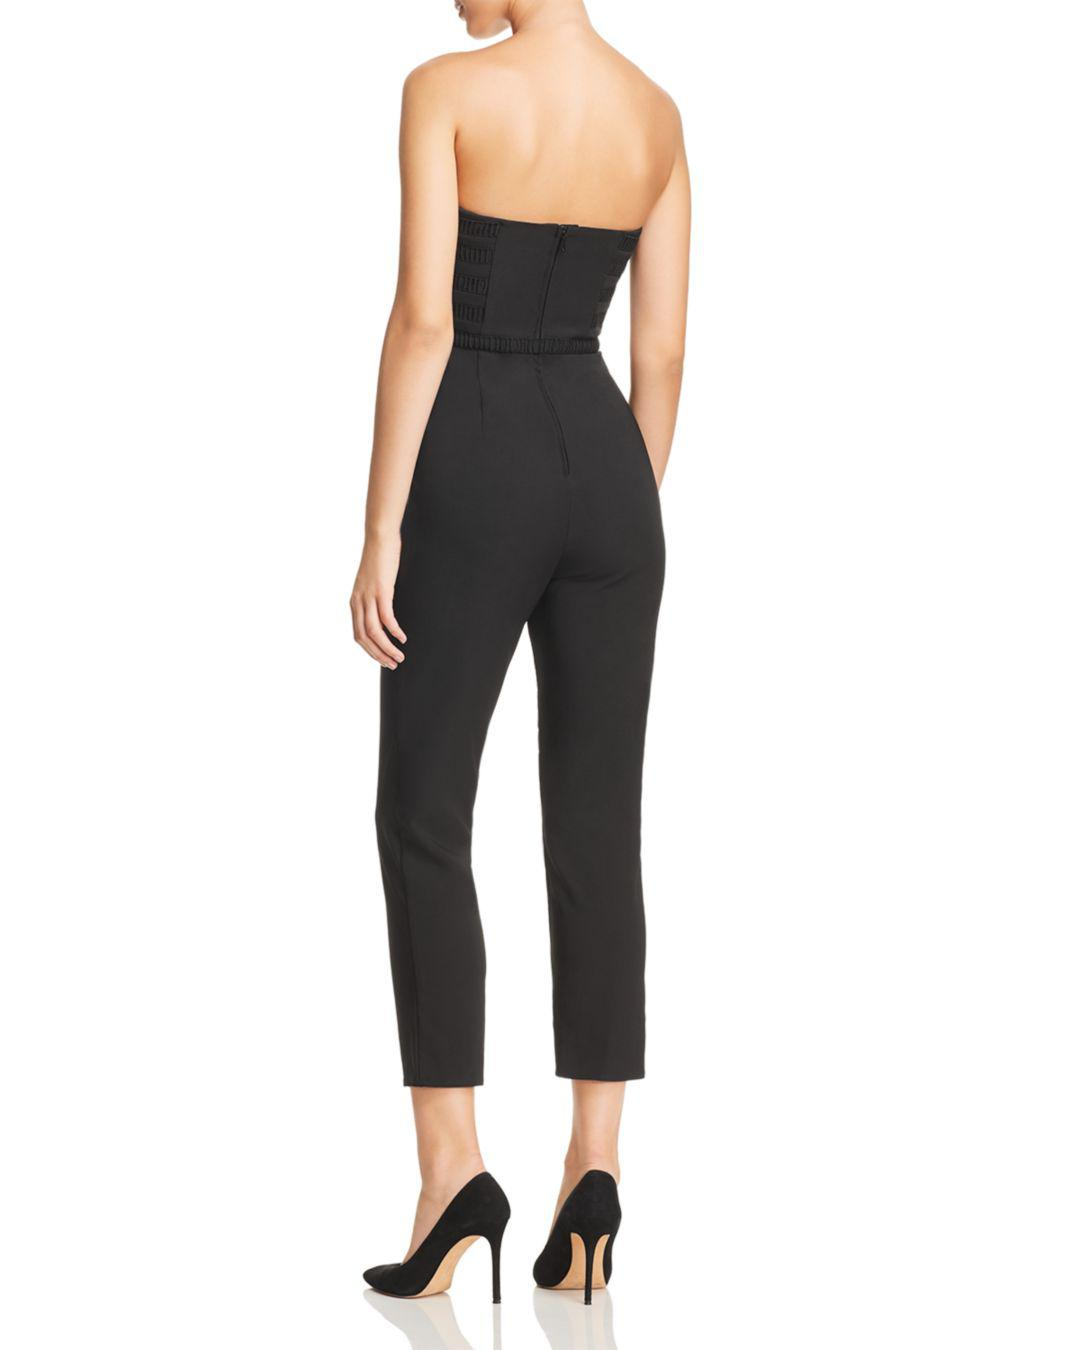 fff171b77e89 Finders Keepers Sangria Strapless Bustier Slim Pants Dress Jumpsuit in Black  - Lyst